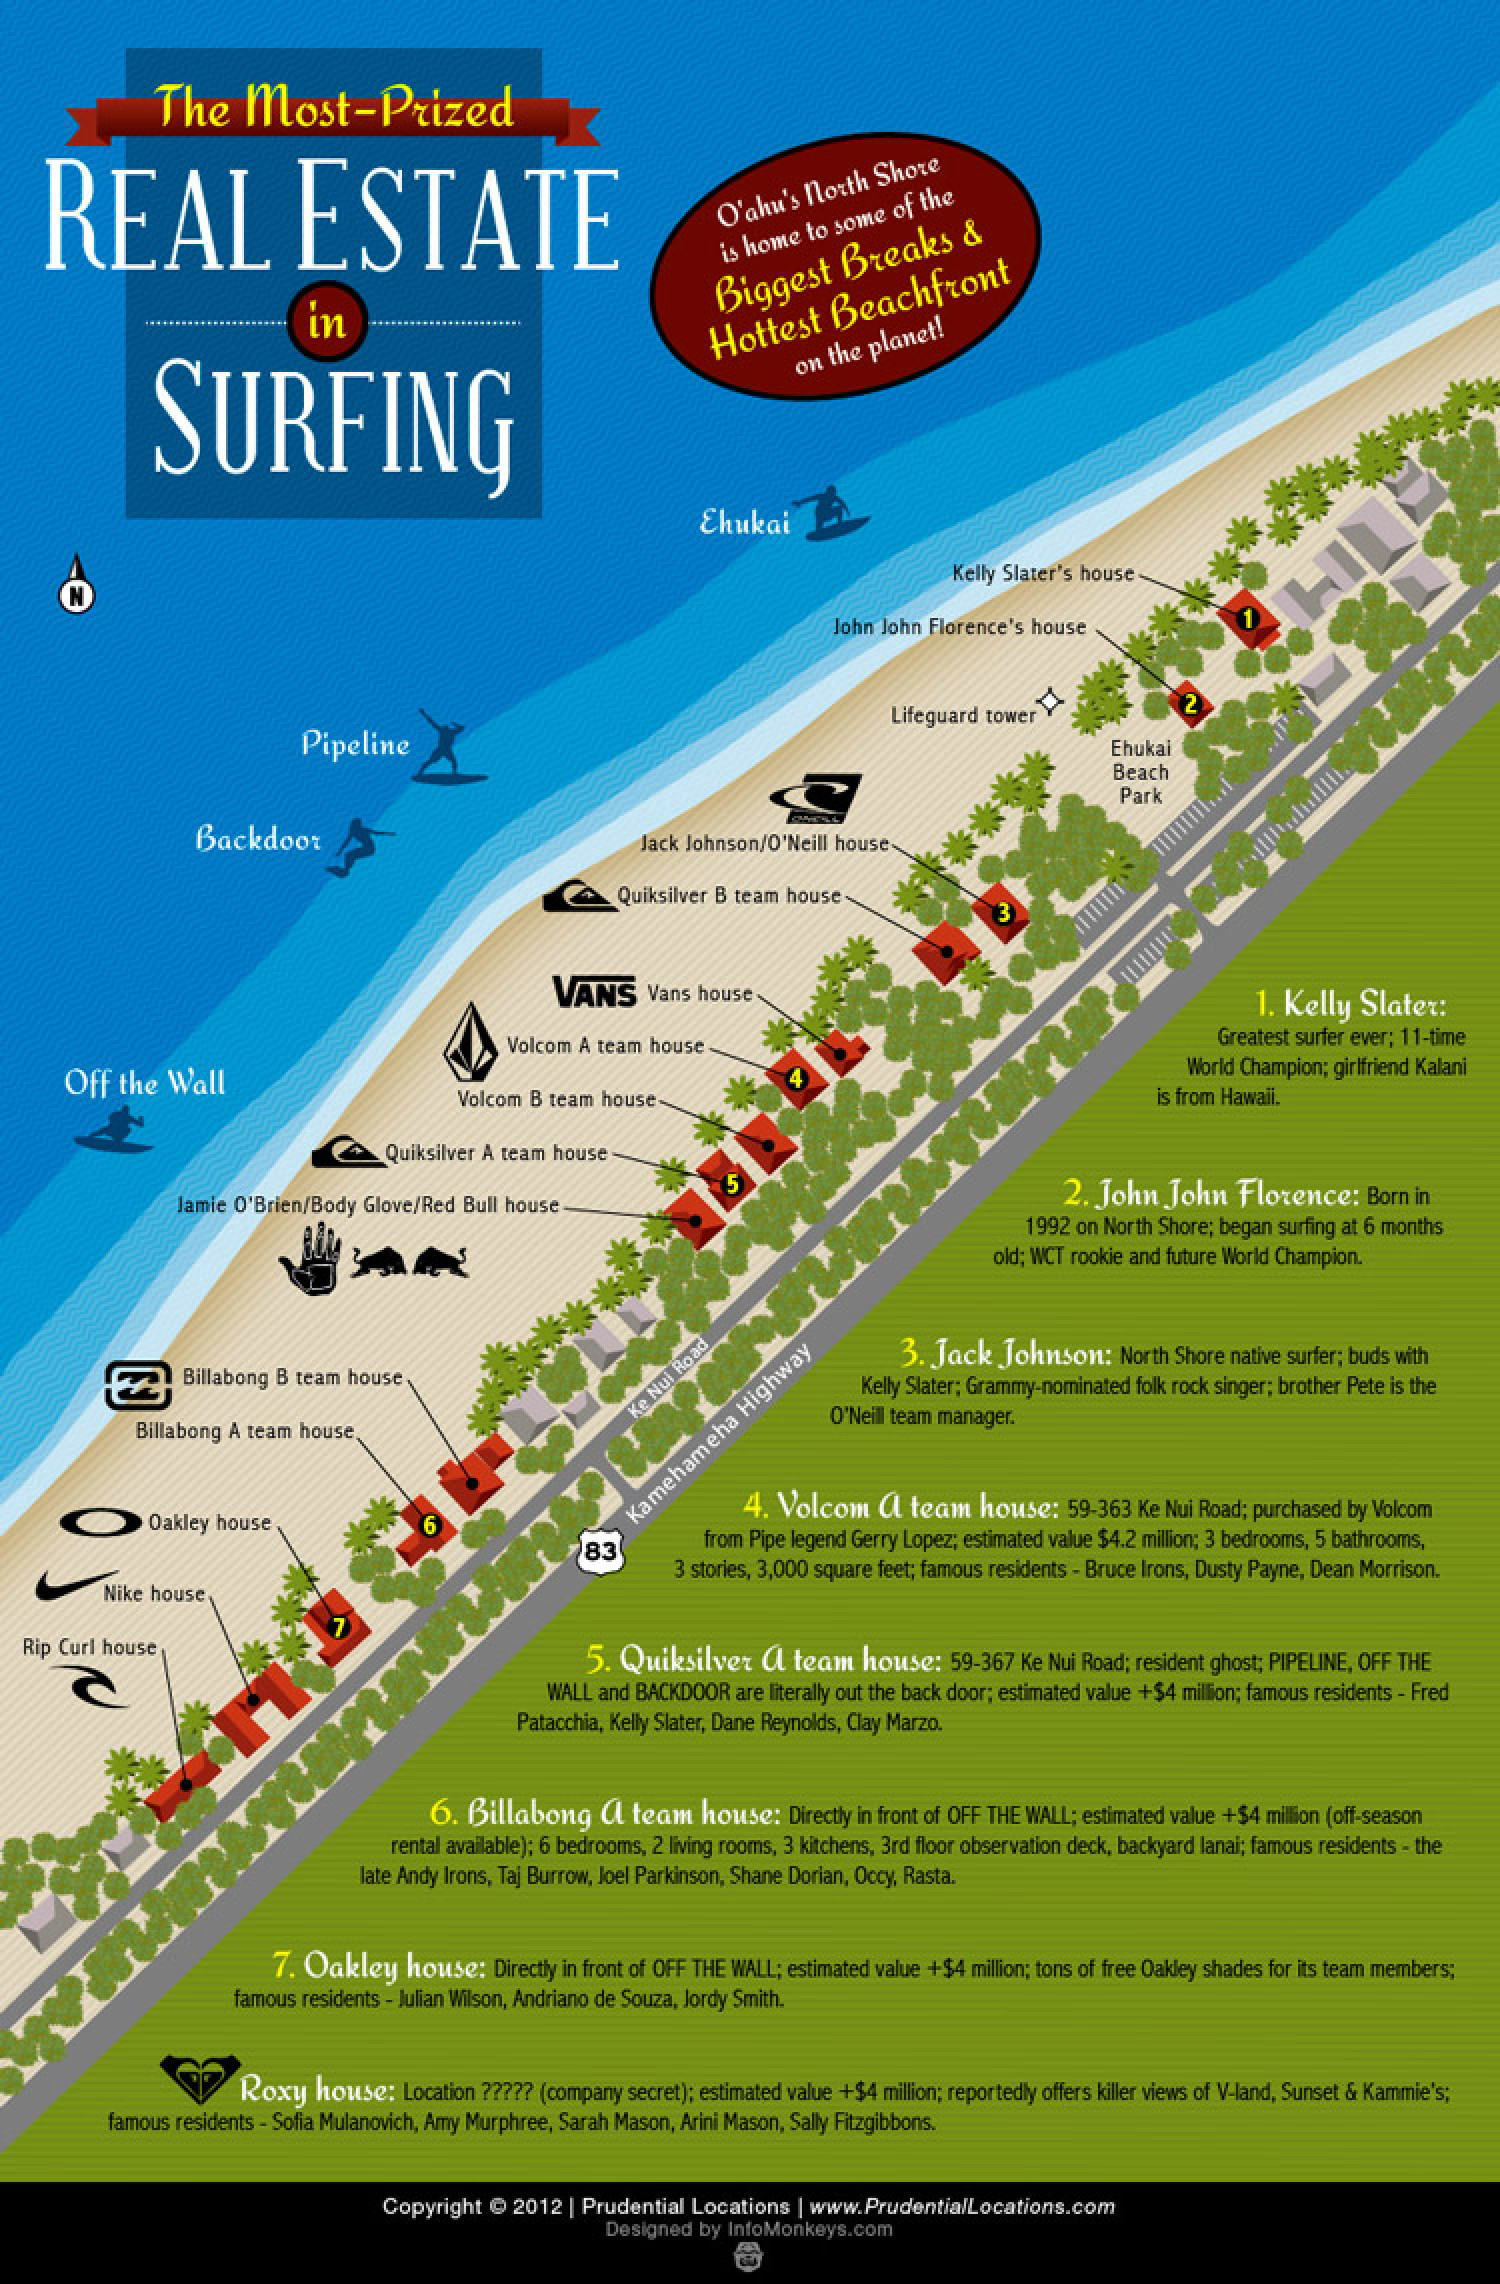 The Most-Prized Real Estate in Surfing Infographic